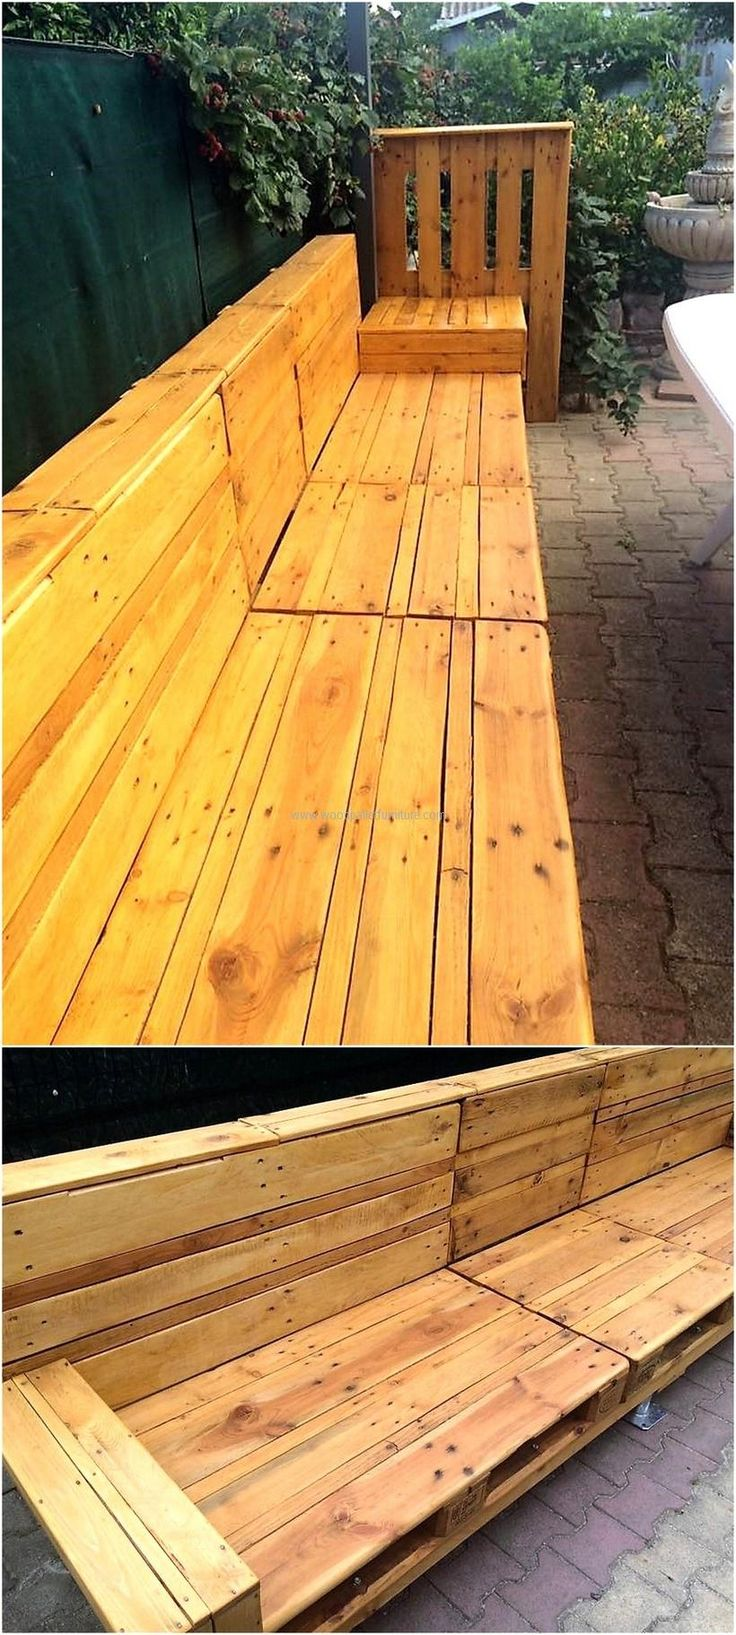 pallet seating idea for garden